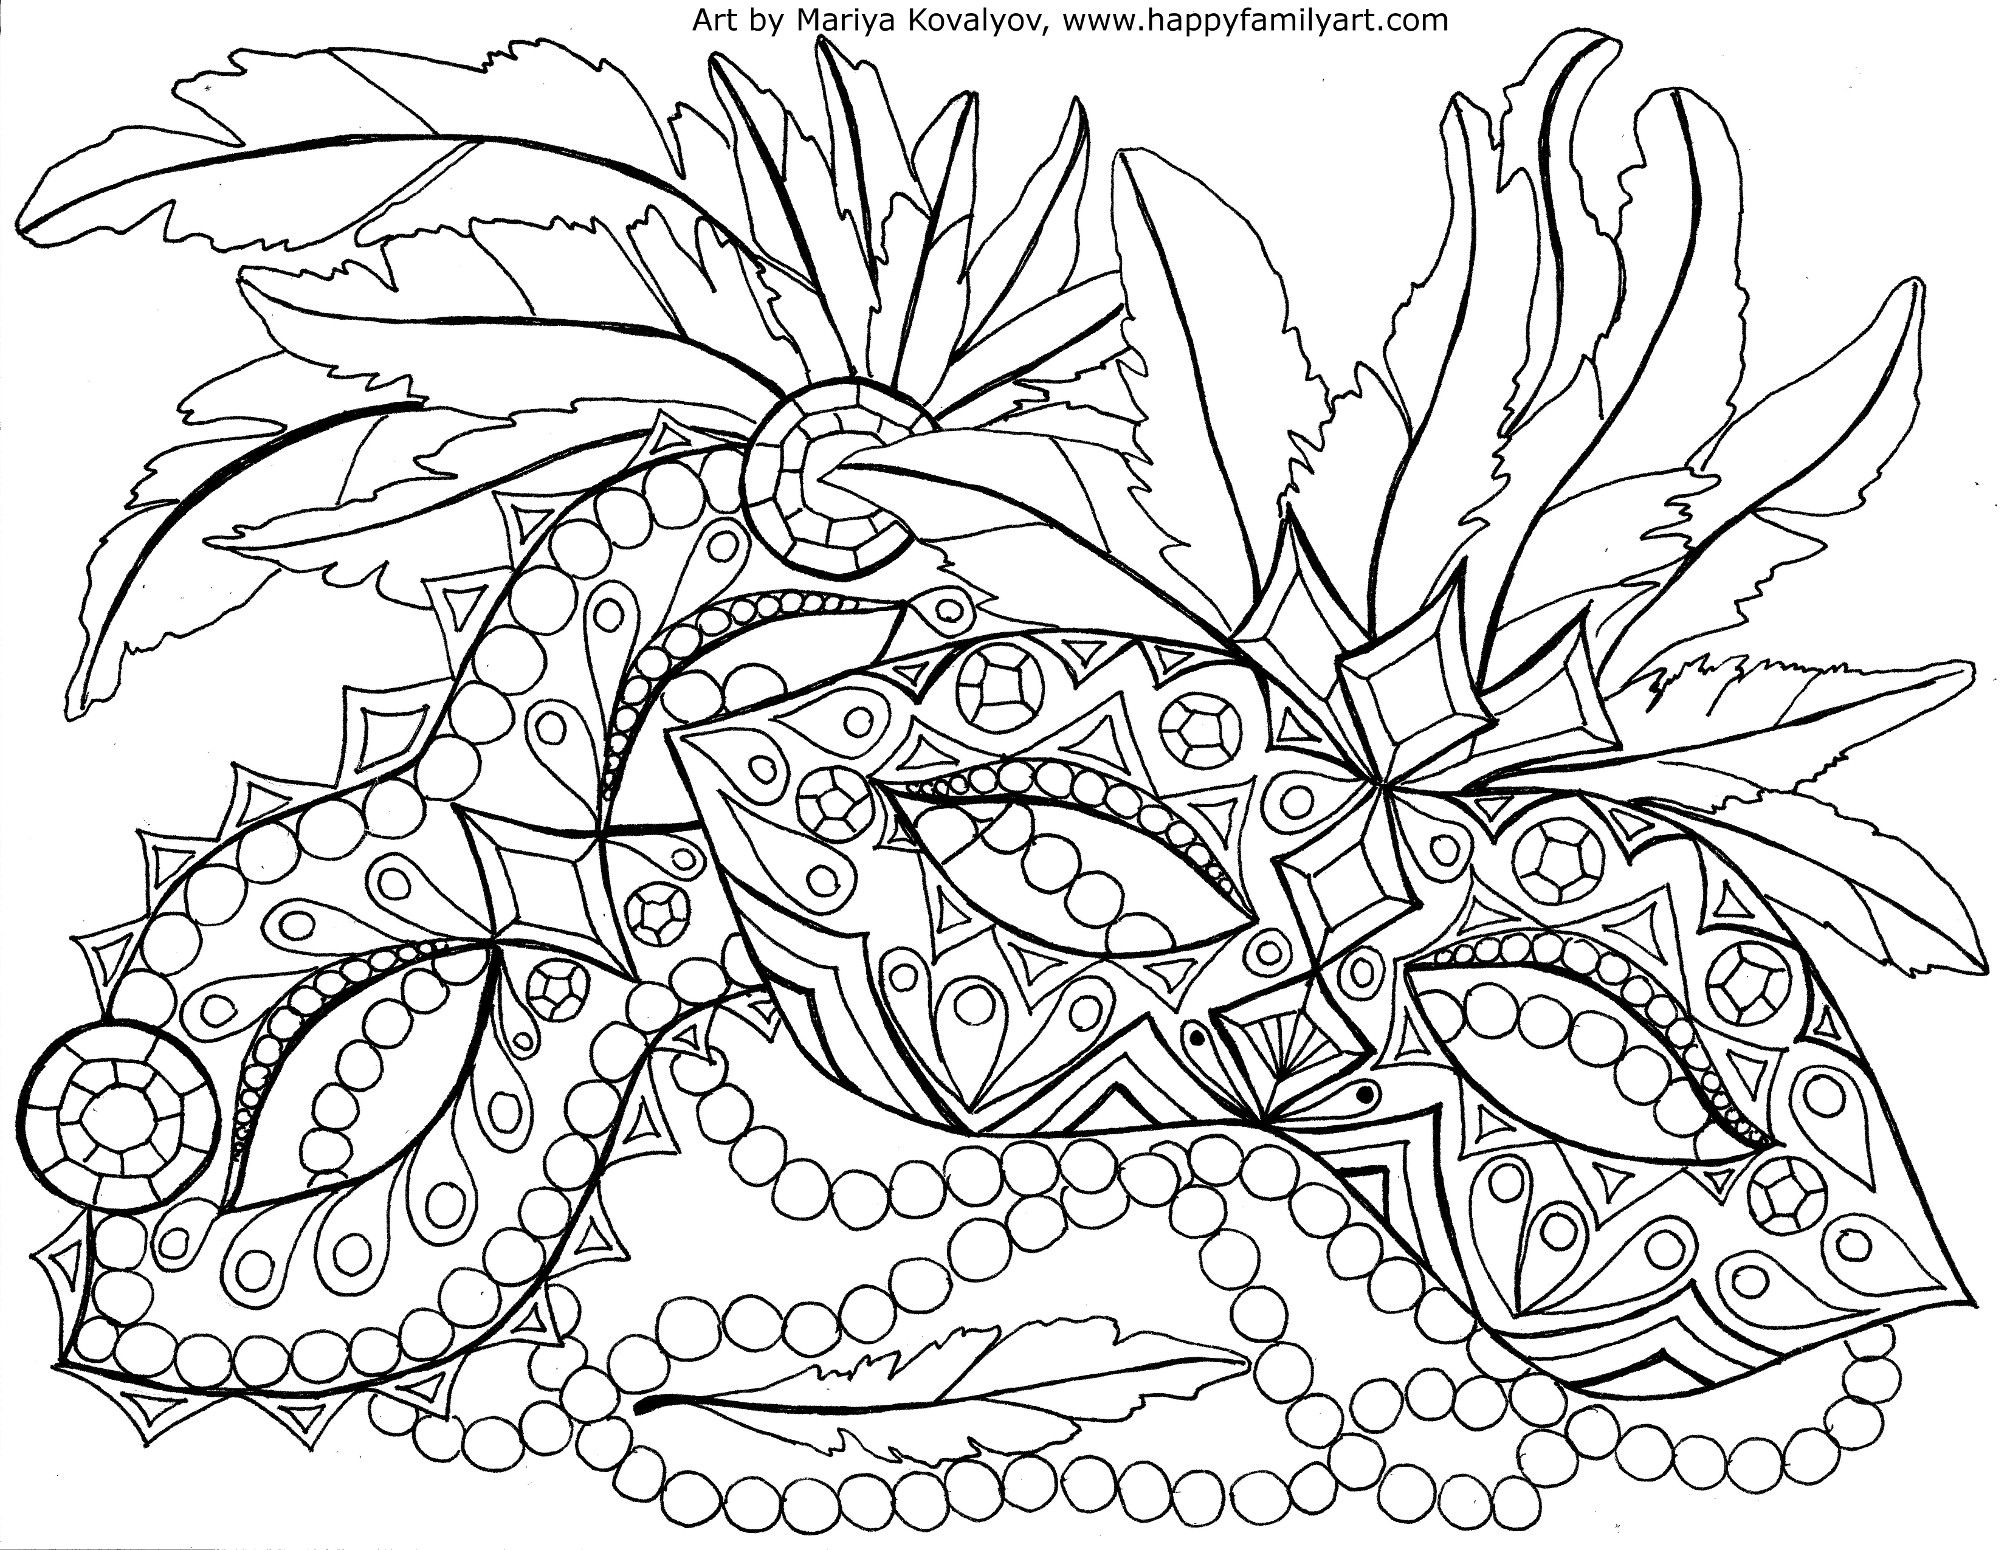 mardi gras coloring sheets free printable mardi gras coloring pages for kids coloring mardi sheets gras